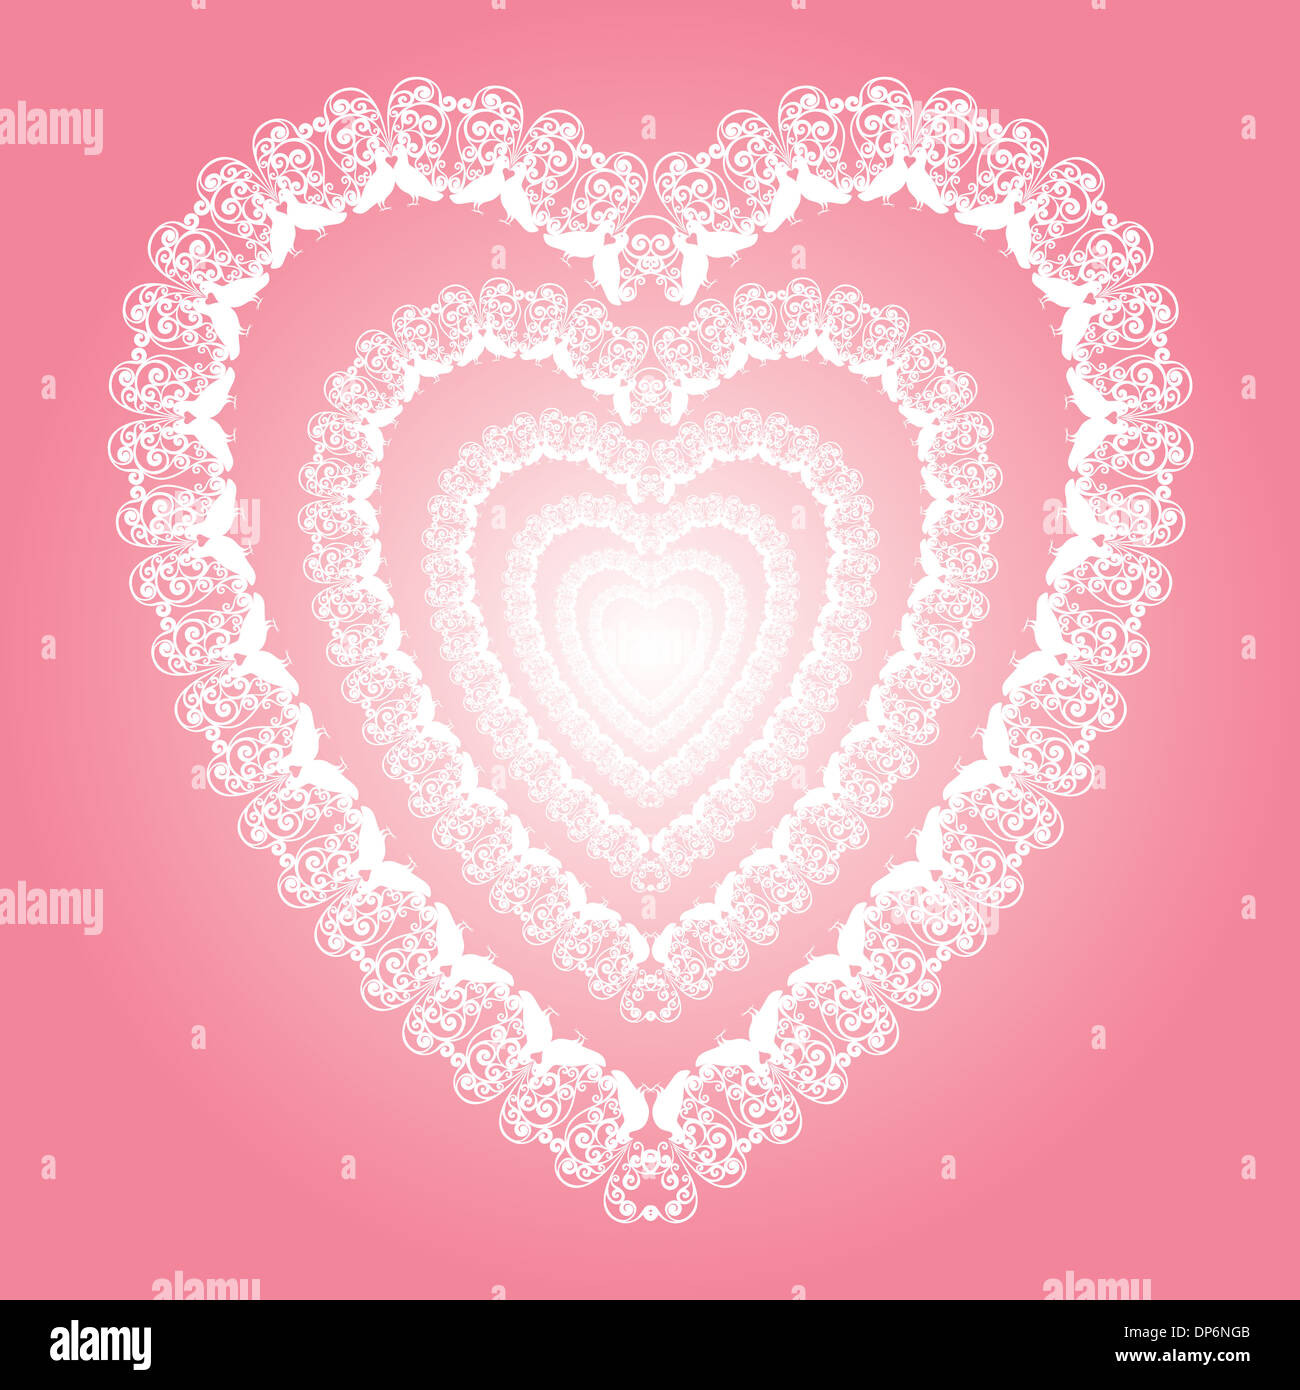 shining lace heart illustration, Valentines day or wedding card ...